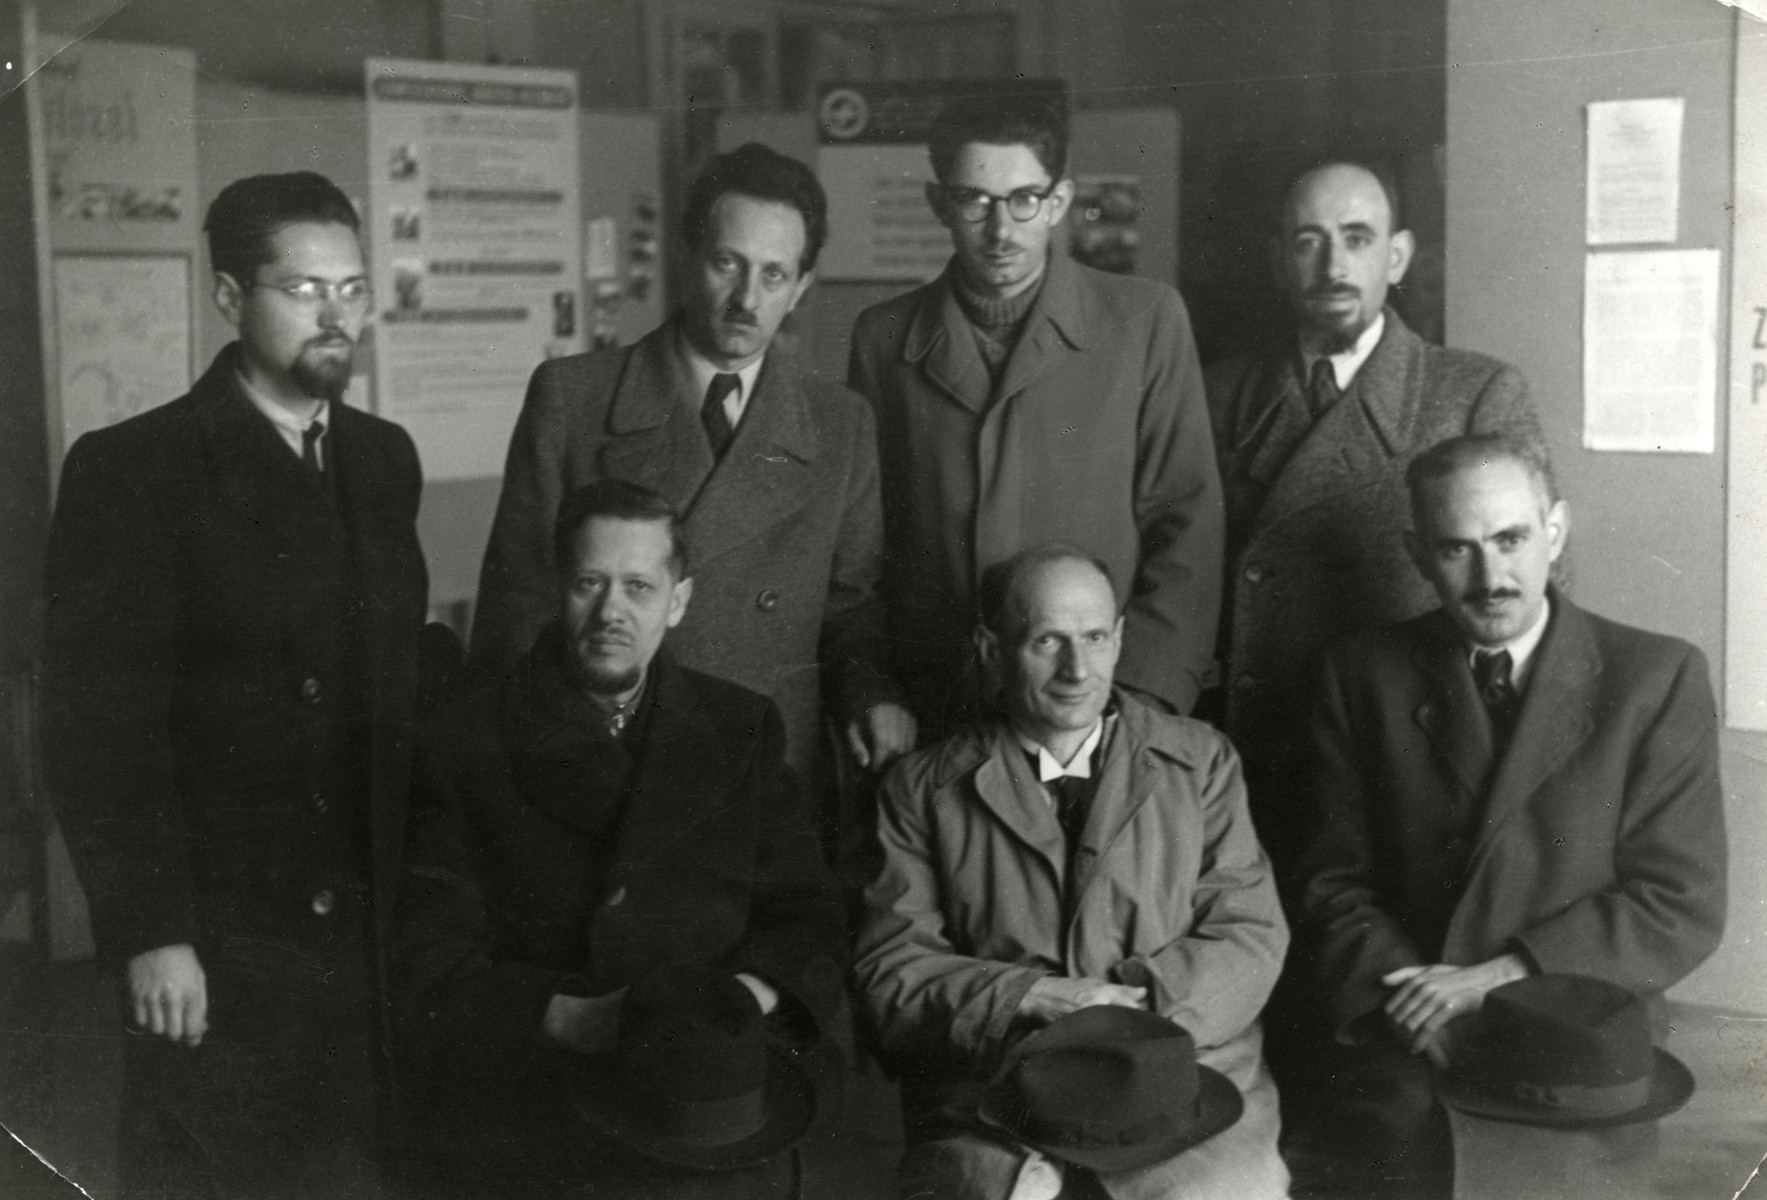 Group portrait of Neolog Rabbis who came to Switzerland on the Kasztner transport to help other Jews to escape.  Pictured are: Top row left to right,  Dr. [Josef] Schindler (Ketchekenet),  Dr. [Adolf] Silberstein (Varschey), Dr. [Odon] Szabo and Dr. Weisz.  Bottom row: Dr. Jeno Frenkel (Szeged), Dr. Protestzult and Dr. [Farkas] Engel (Cegled).